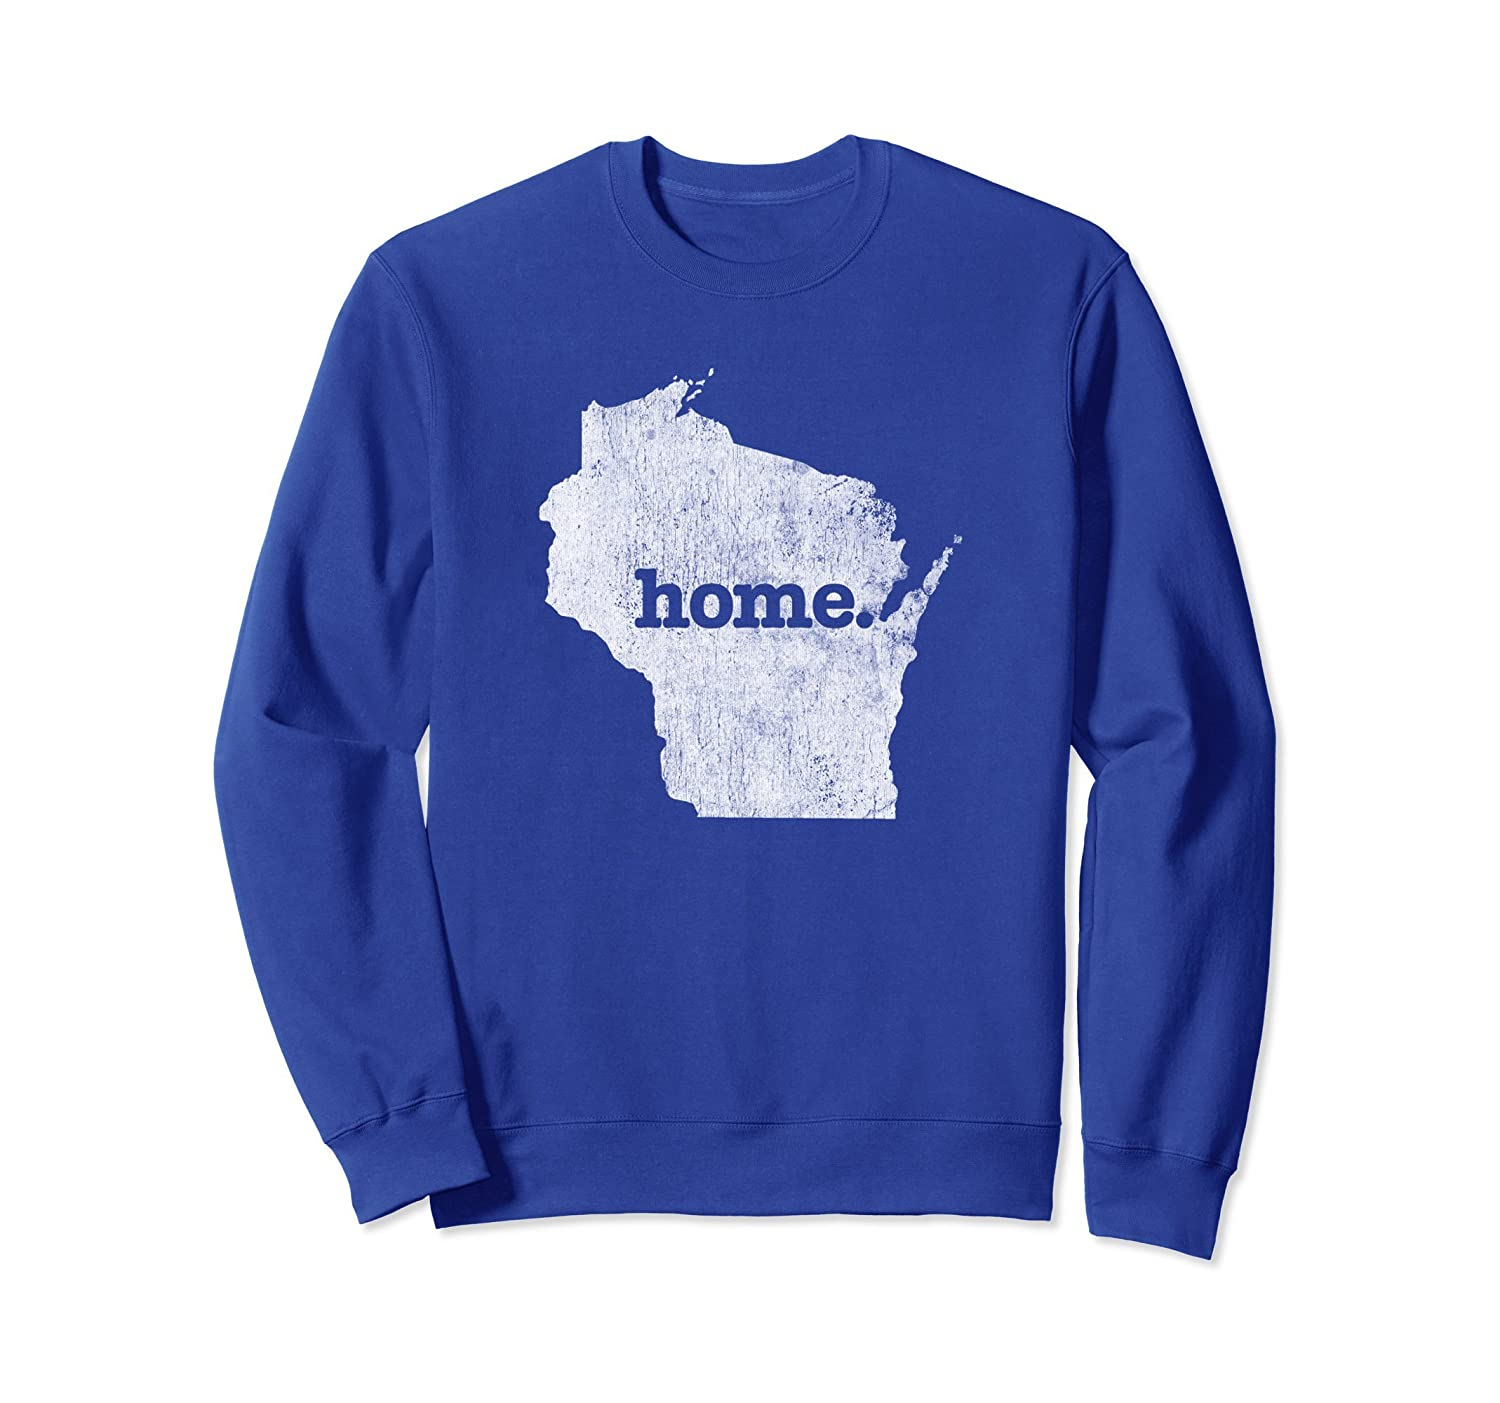 Vintage Wisconsin Home Sweatshirt Wisconsin Sweat Shirt-alottee gift